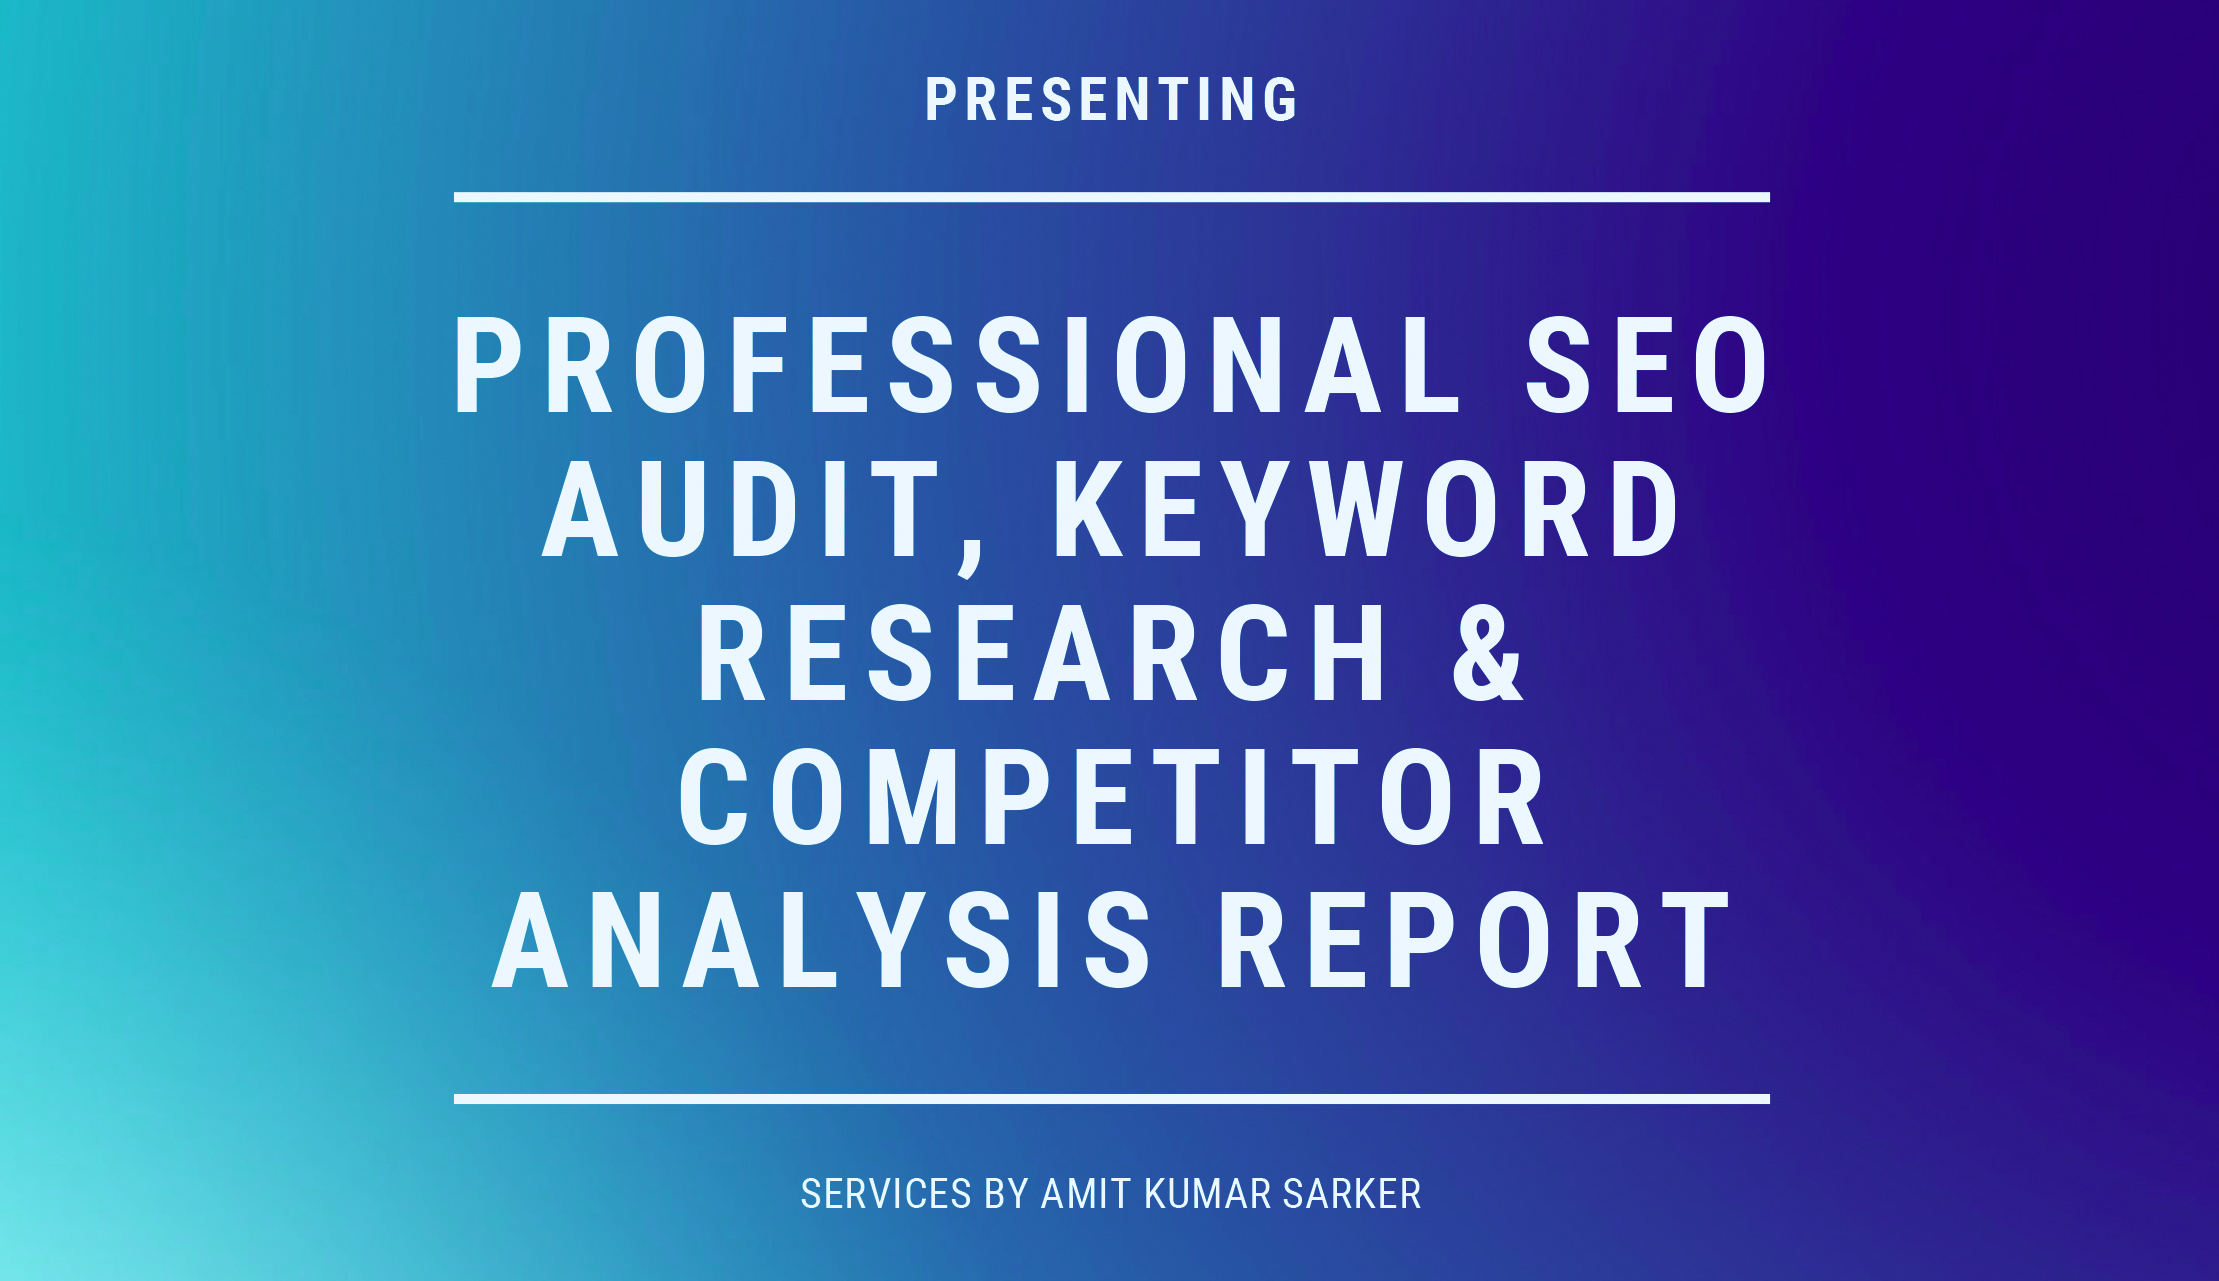 SEO Audit,  Keyword Research & Competitor Analysis